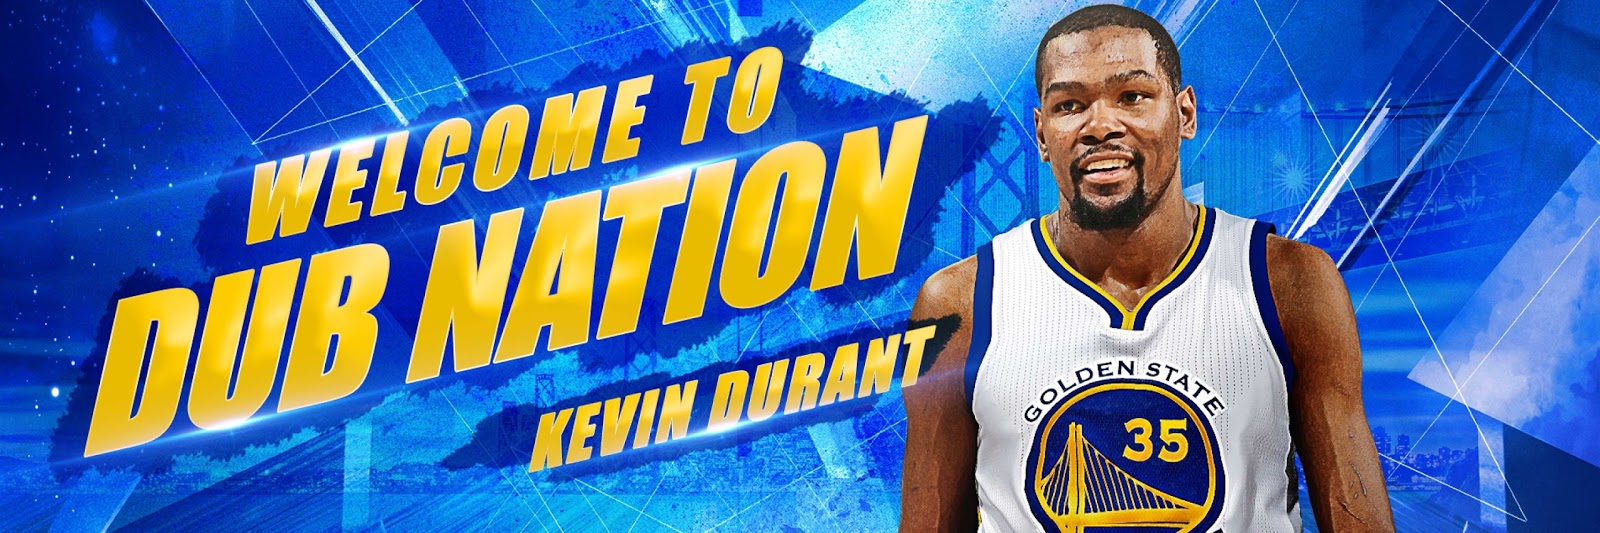 God Politics And Baseball Yes Kevin Durant Is A Golden State Warrior